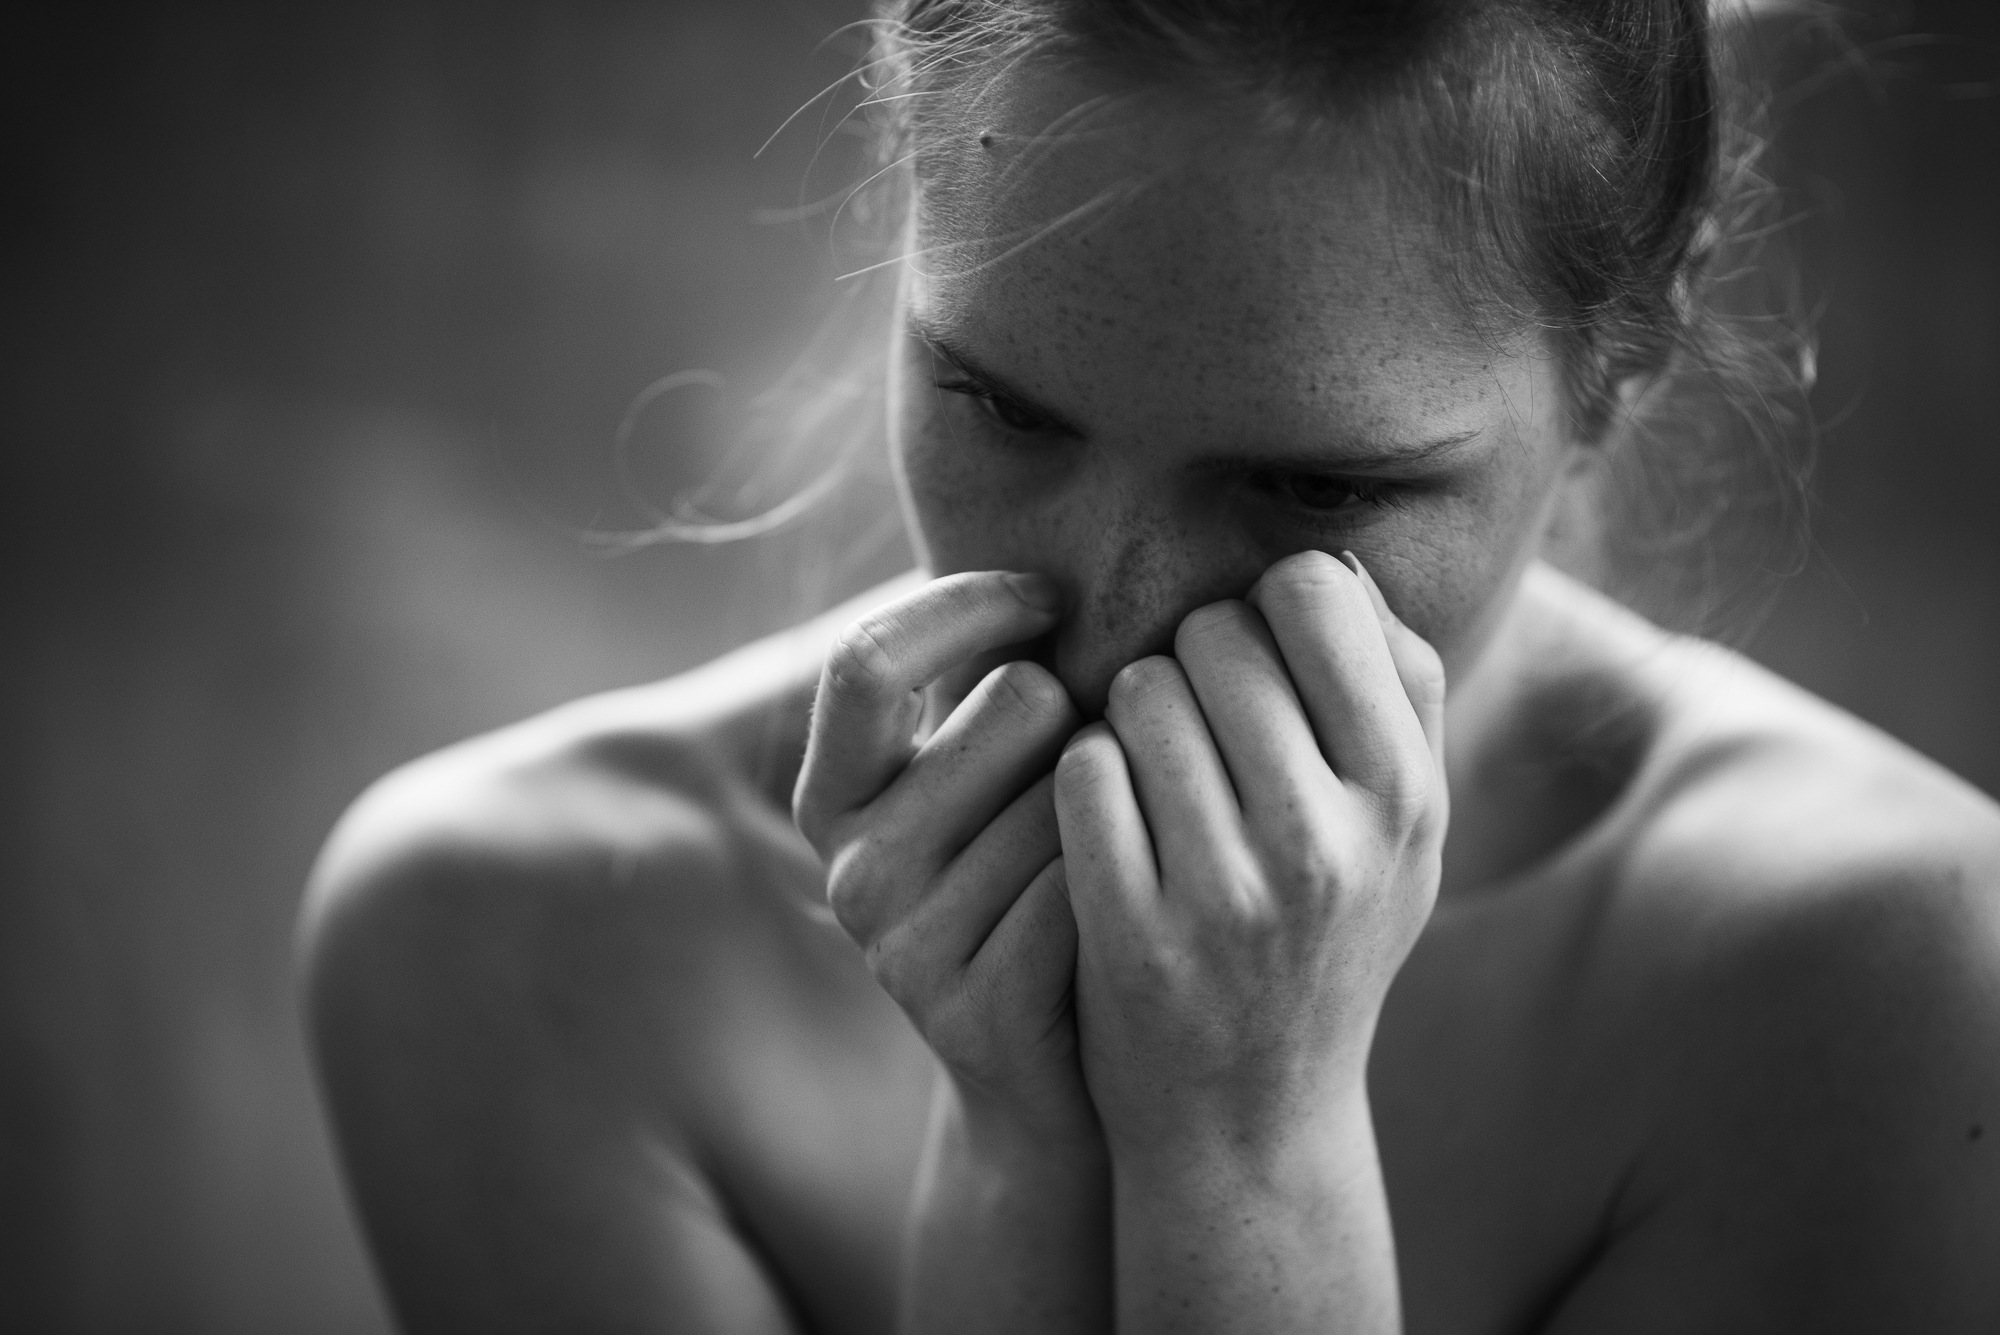 Emotional moments with Marie by Thomas Ruppel